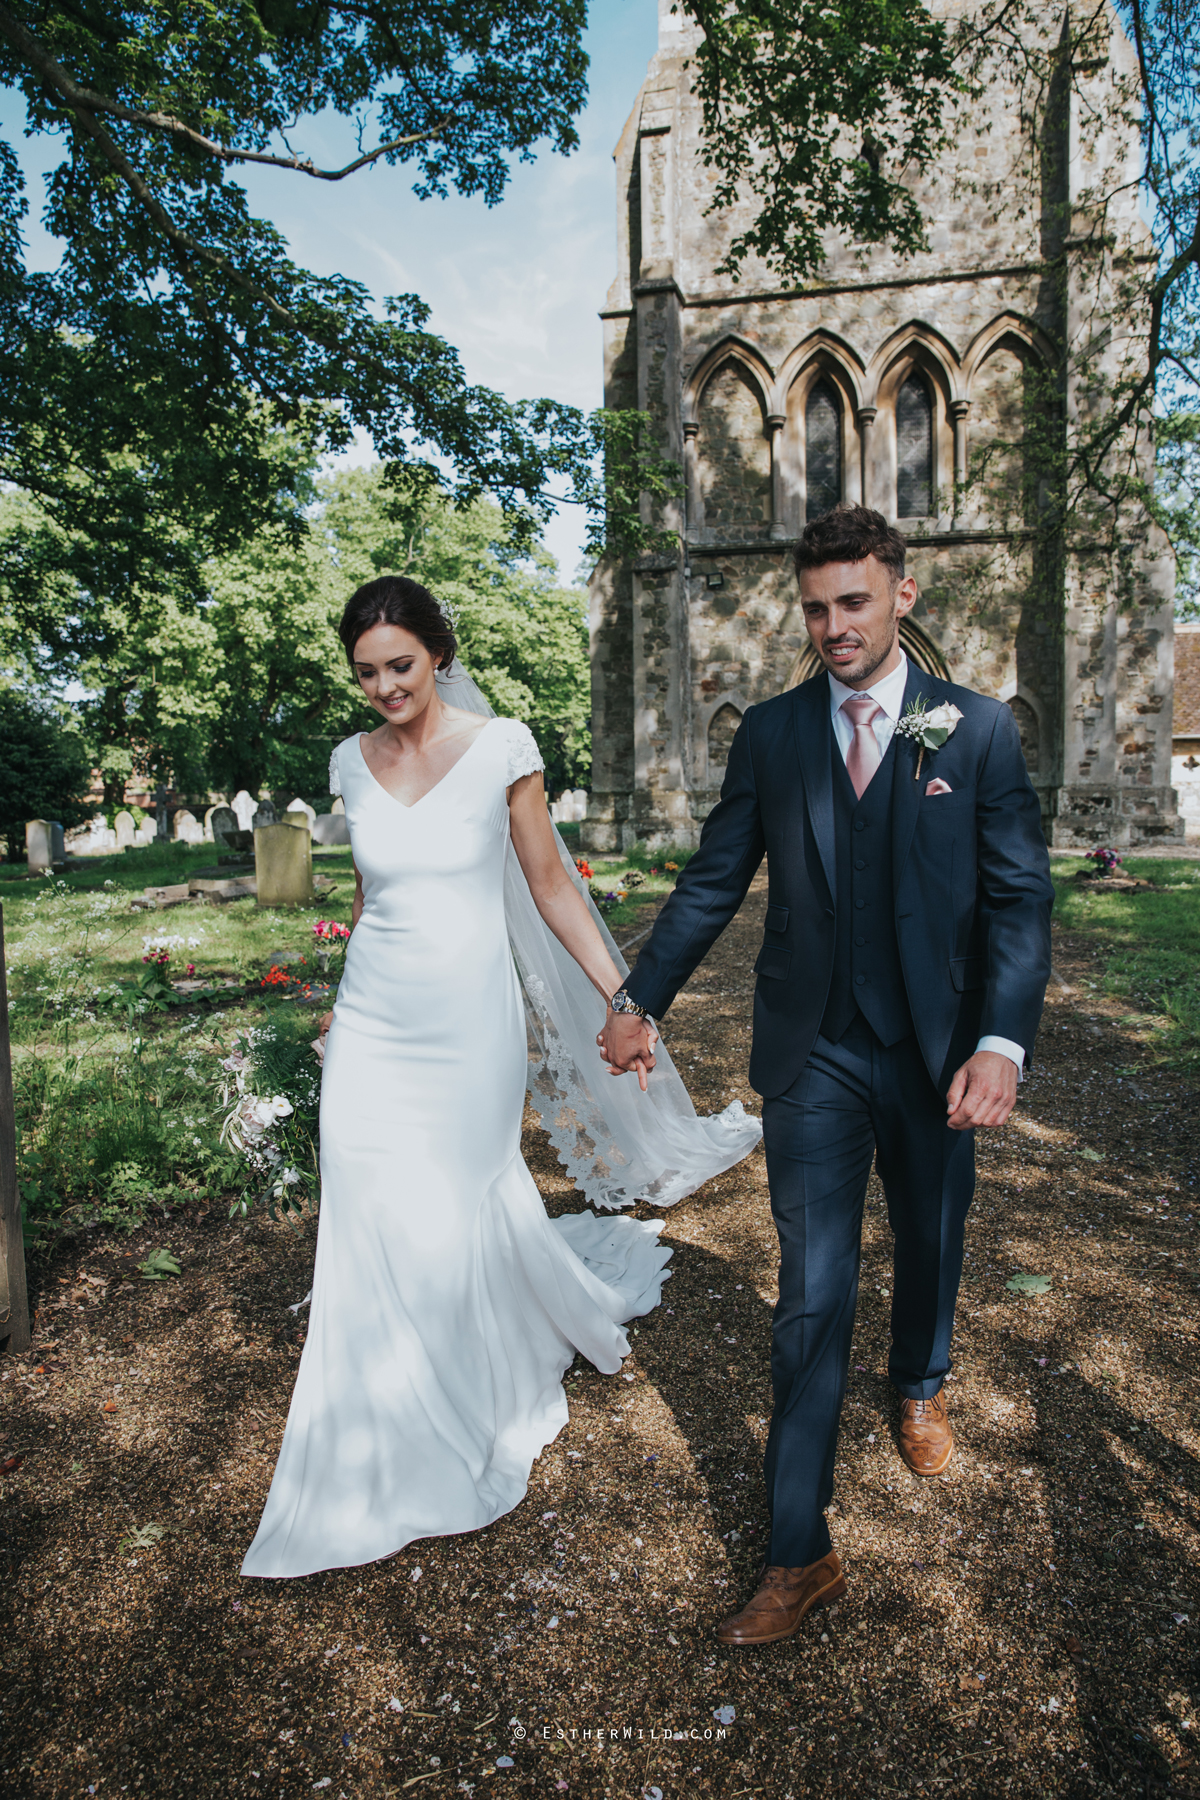 Wootton_Wedding_Copyright_Esther_Wild_Photographer_IMG_1488.jpg